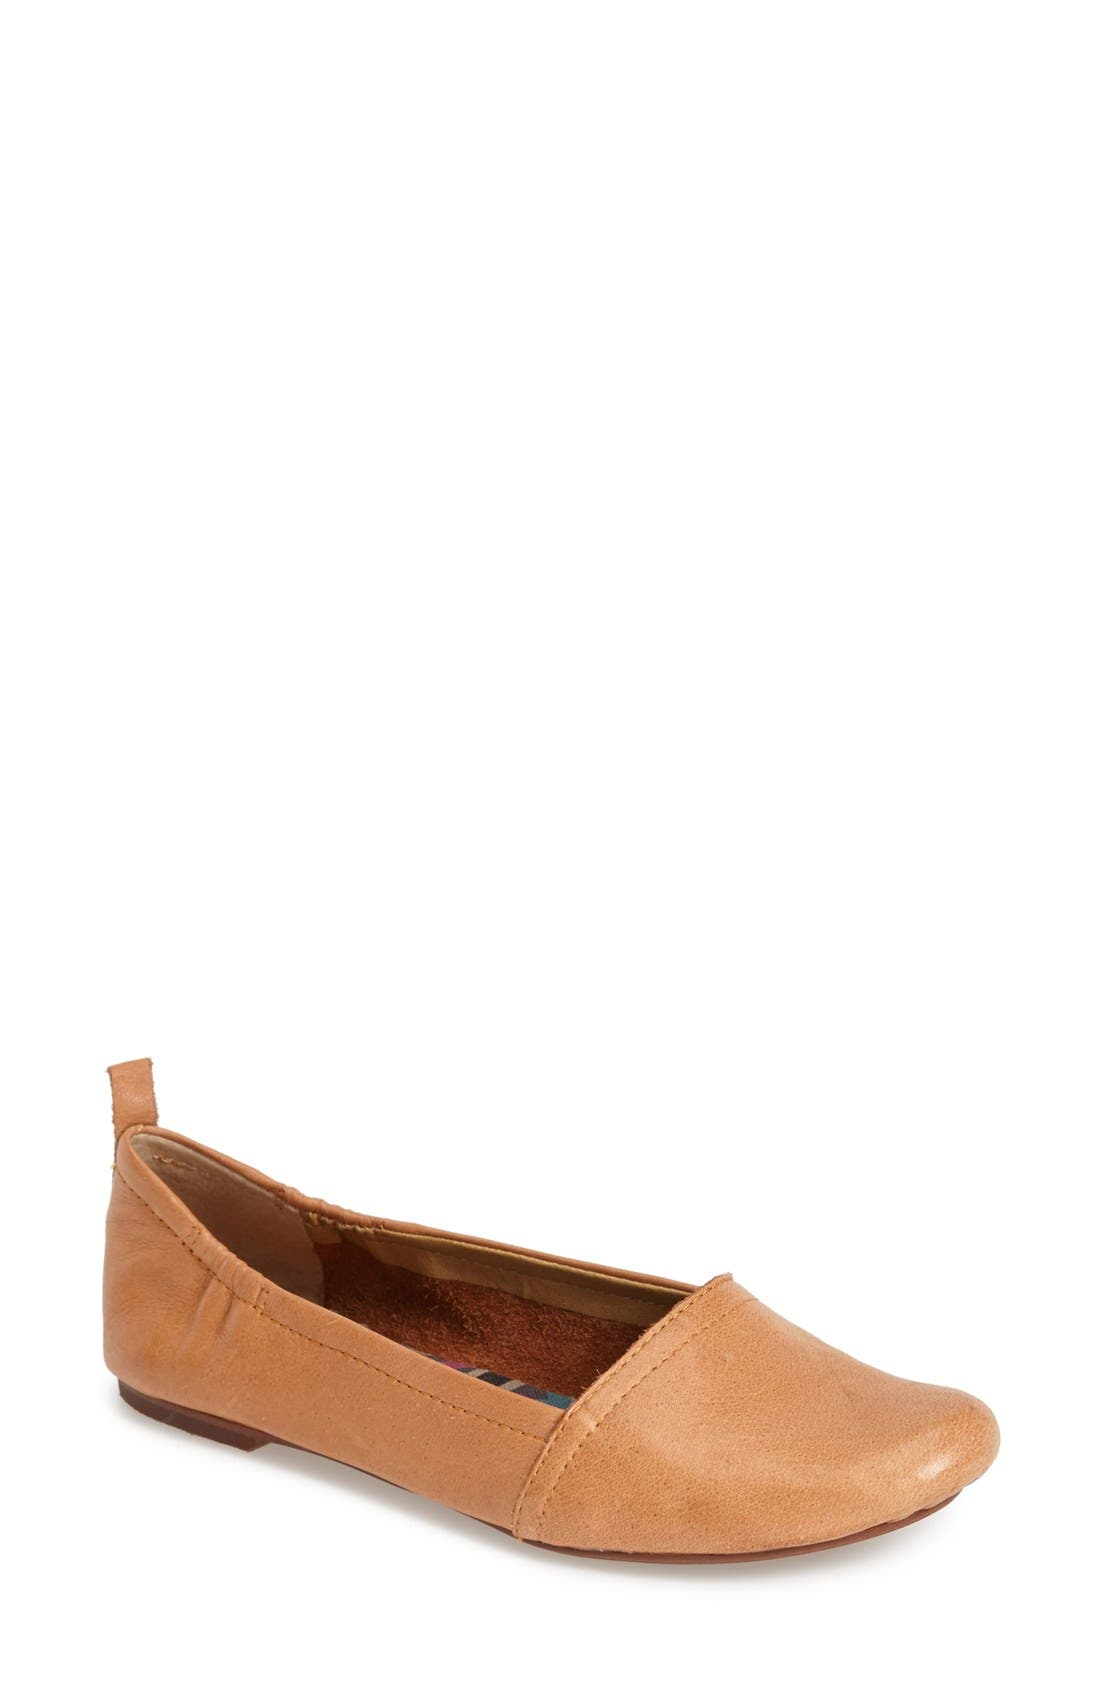 'Bettie' Leather Flat,                             Main thumbnail 4, color,